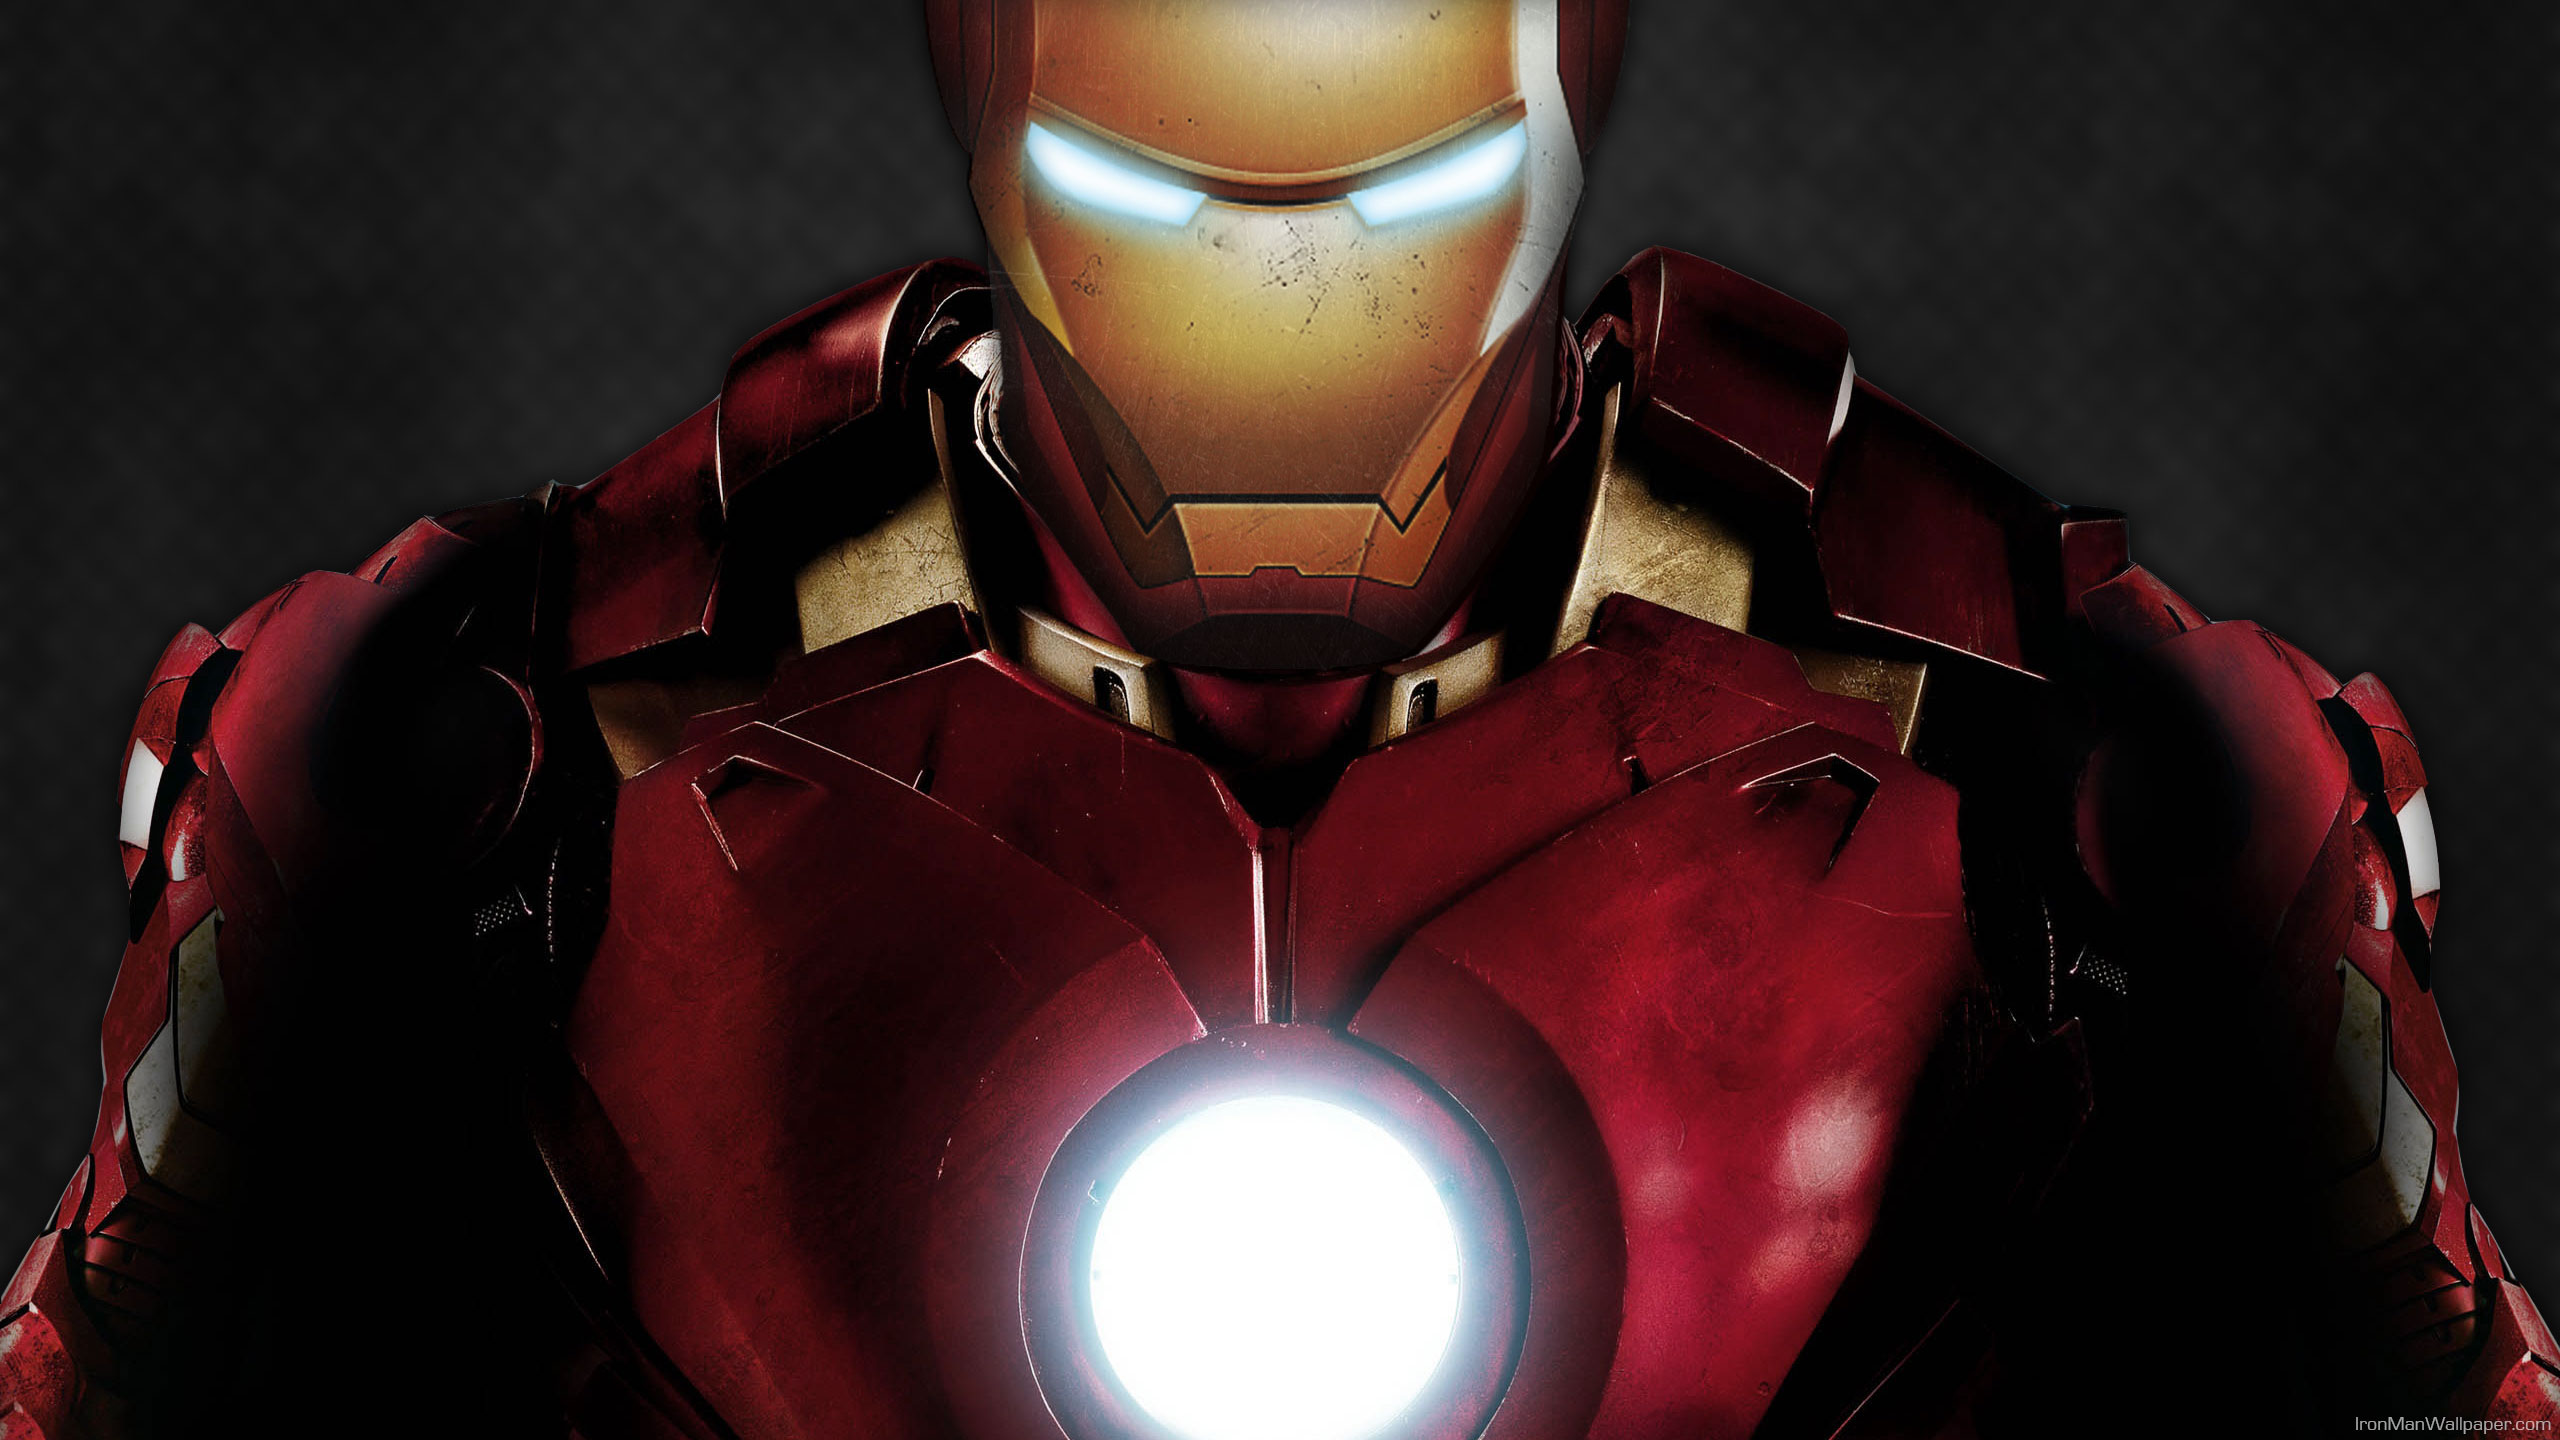 Cool iron Man phone wallpapers  Iphone Collection of Cool Iron Man Wallpaper on HDWallpapers 2560x1440